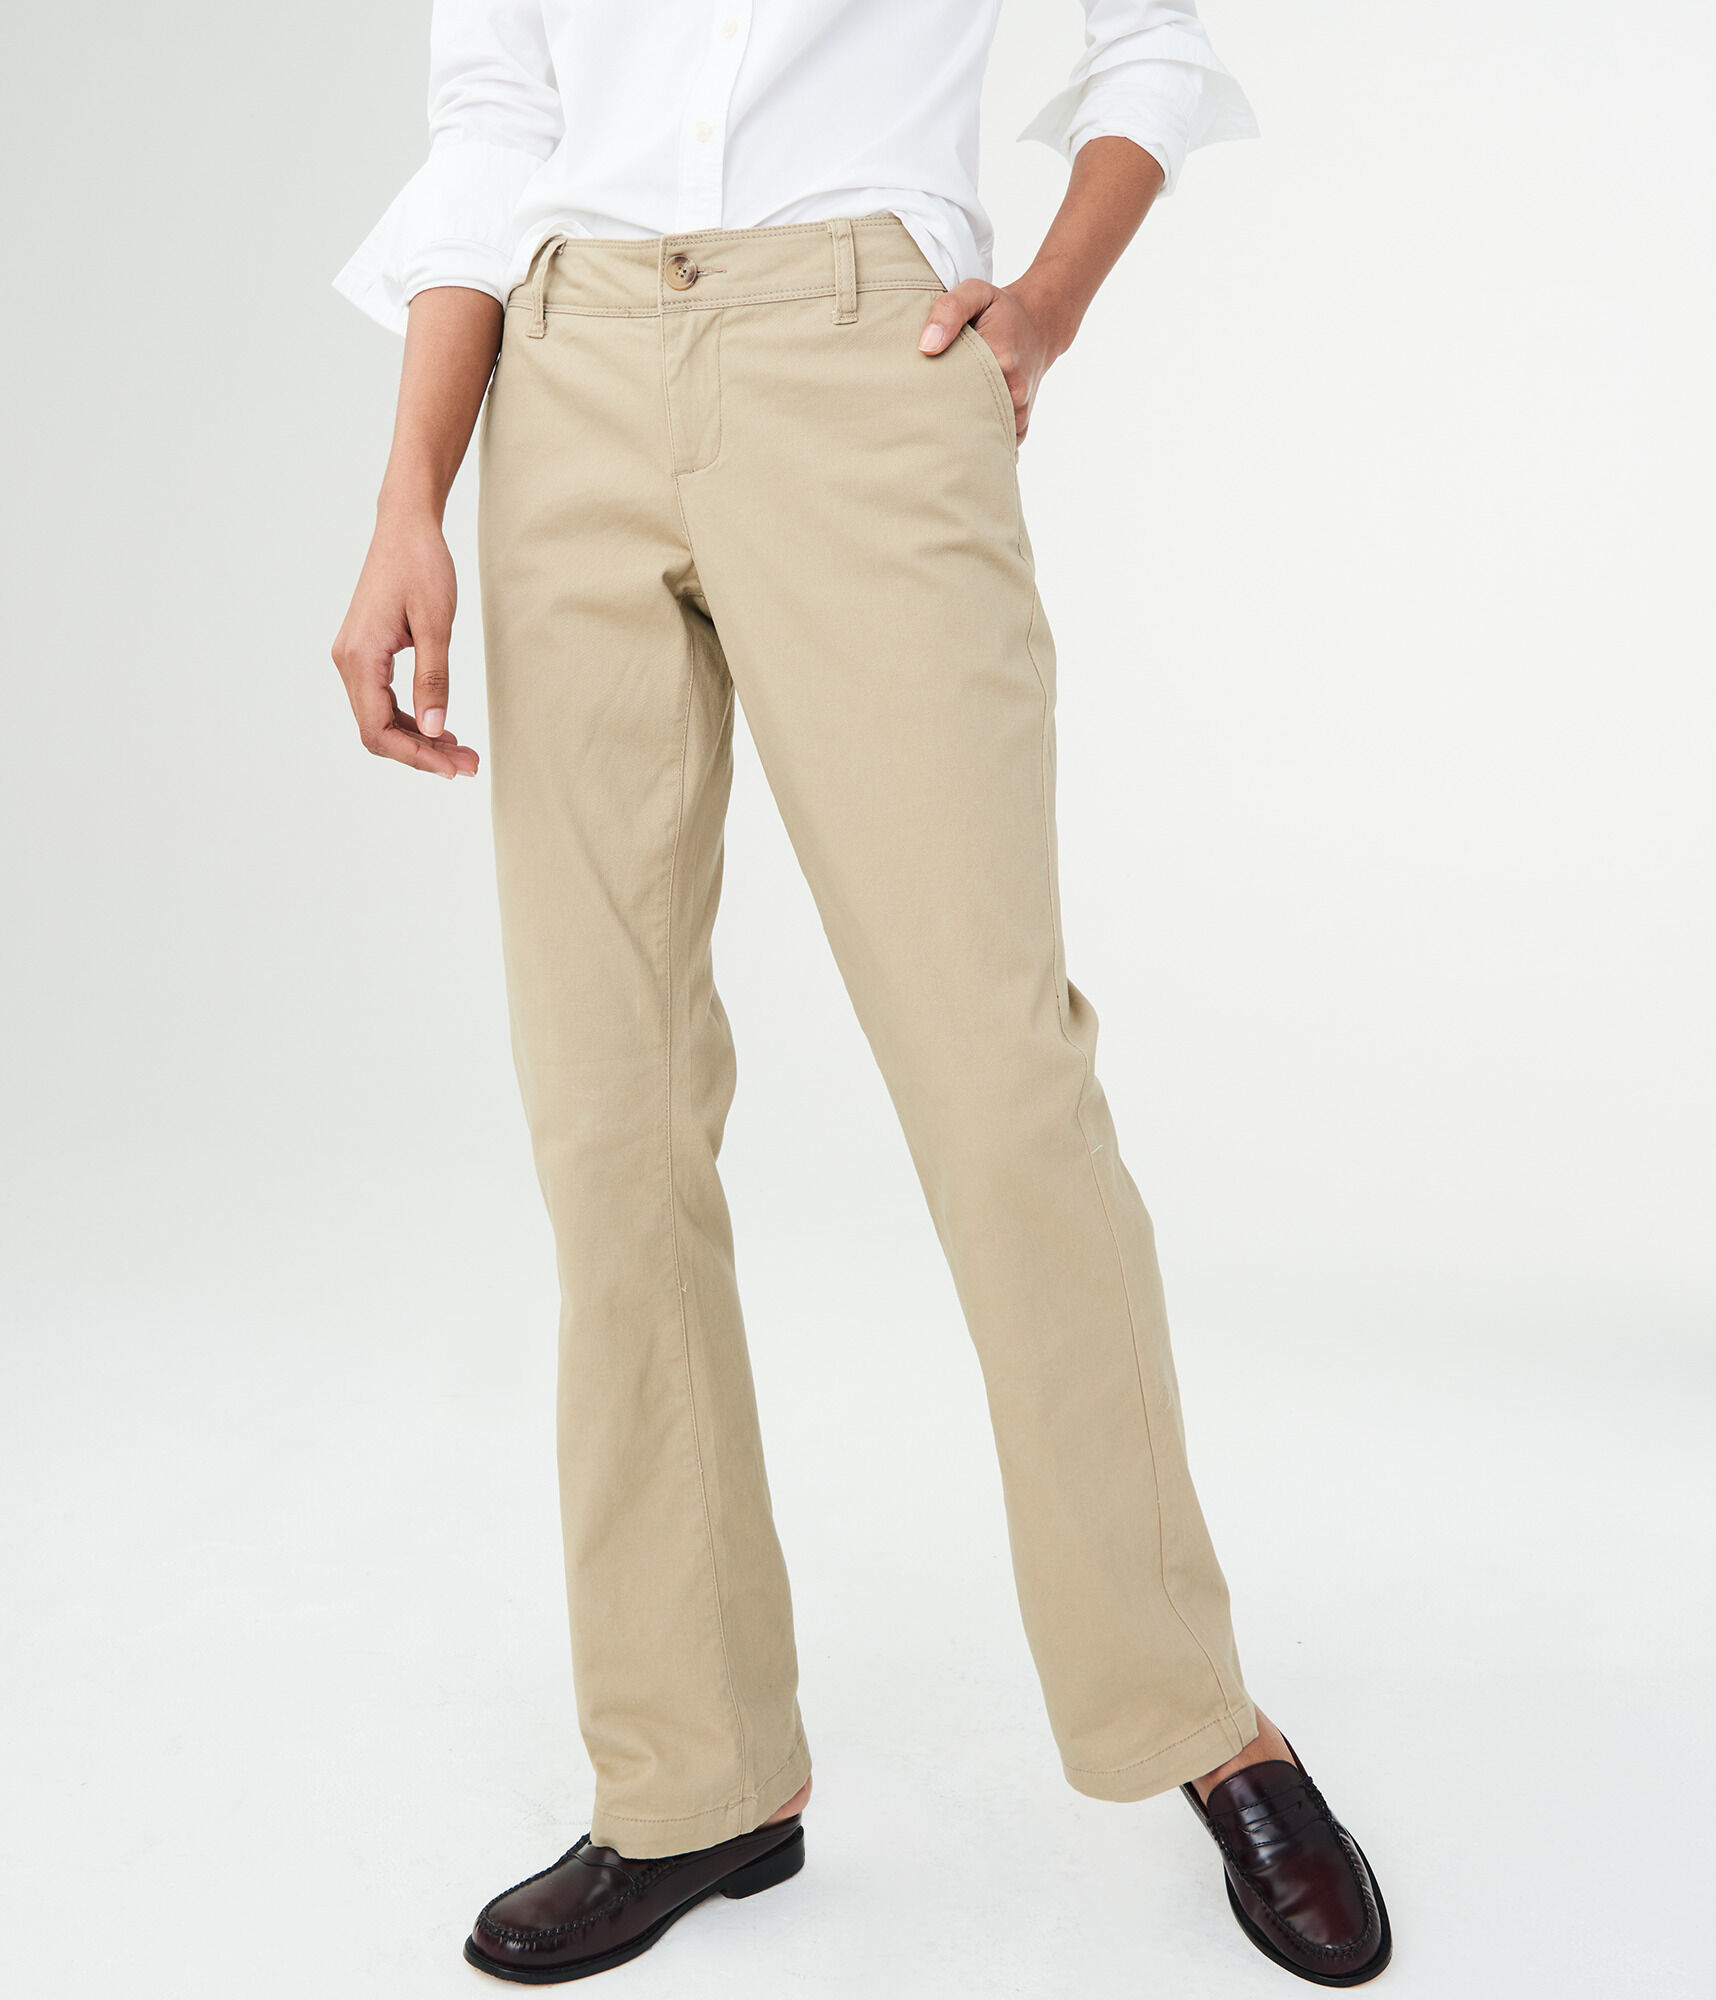 Fashion Shoppingbudget find old navy boyfriend khakis